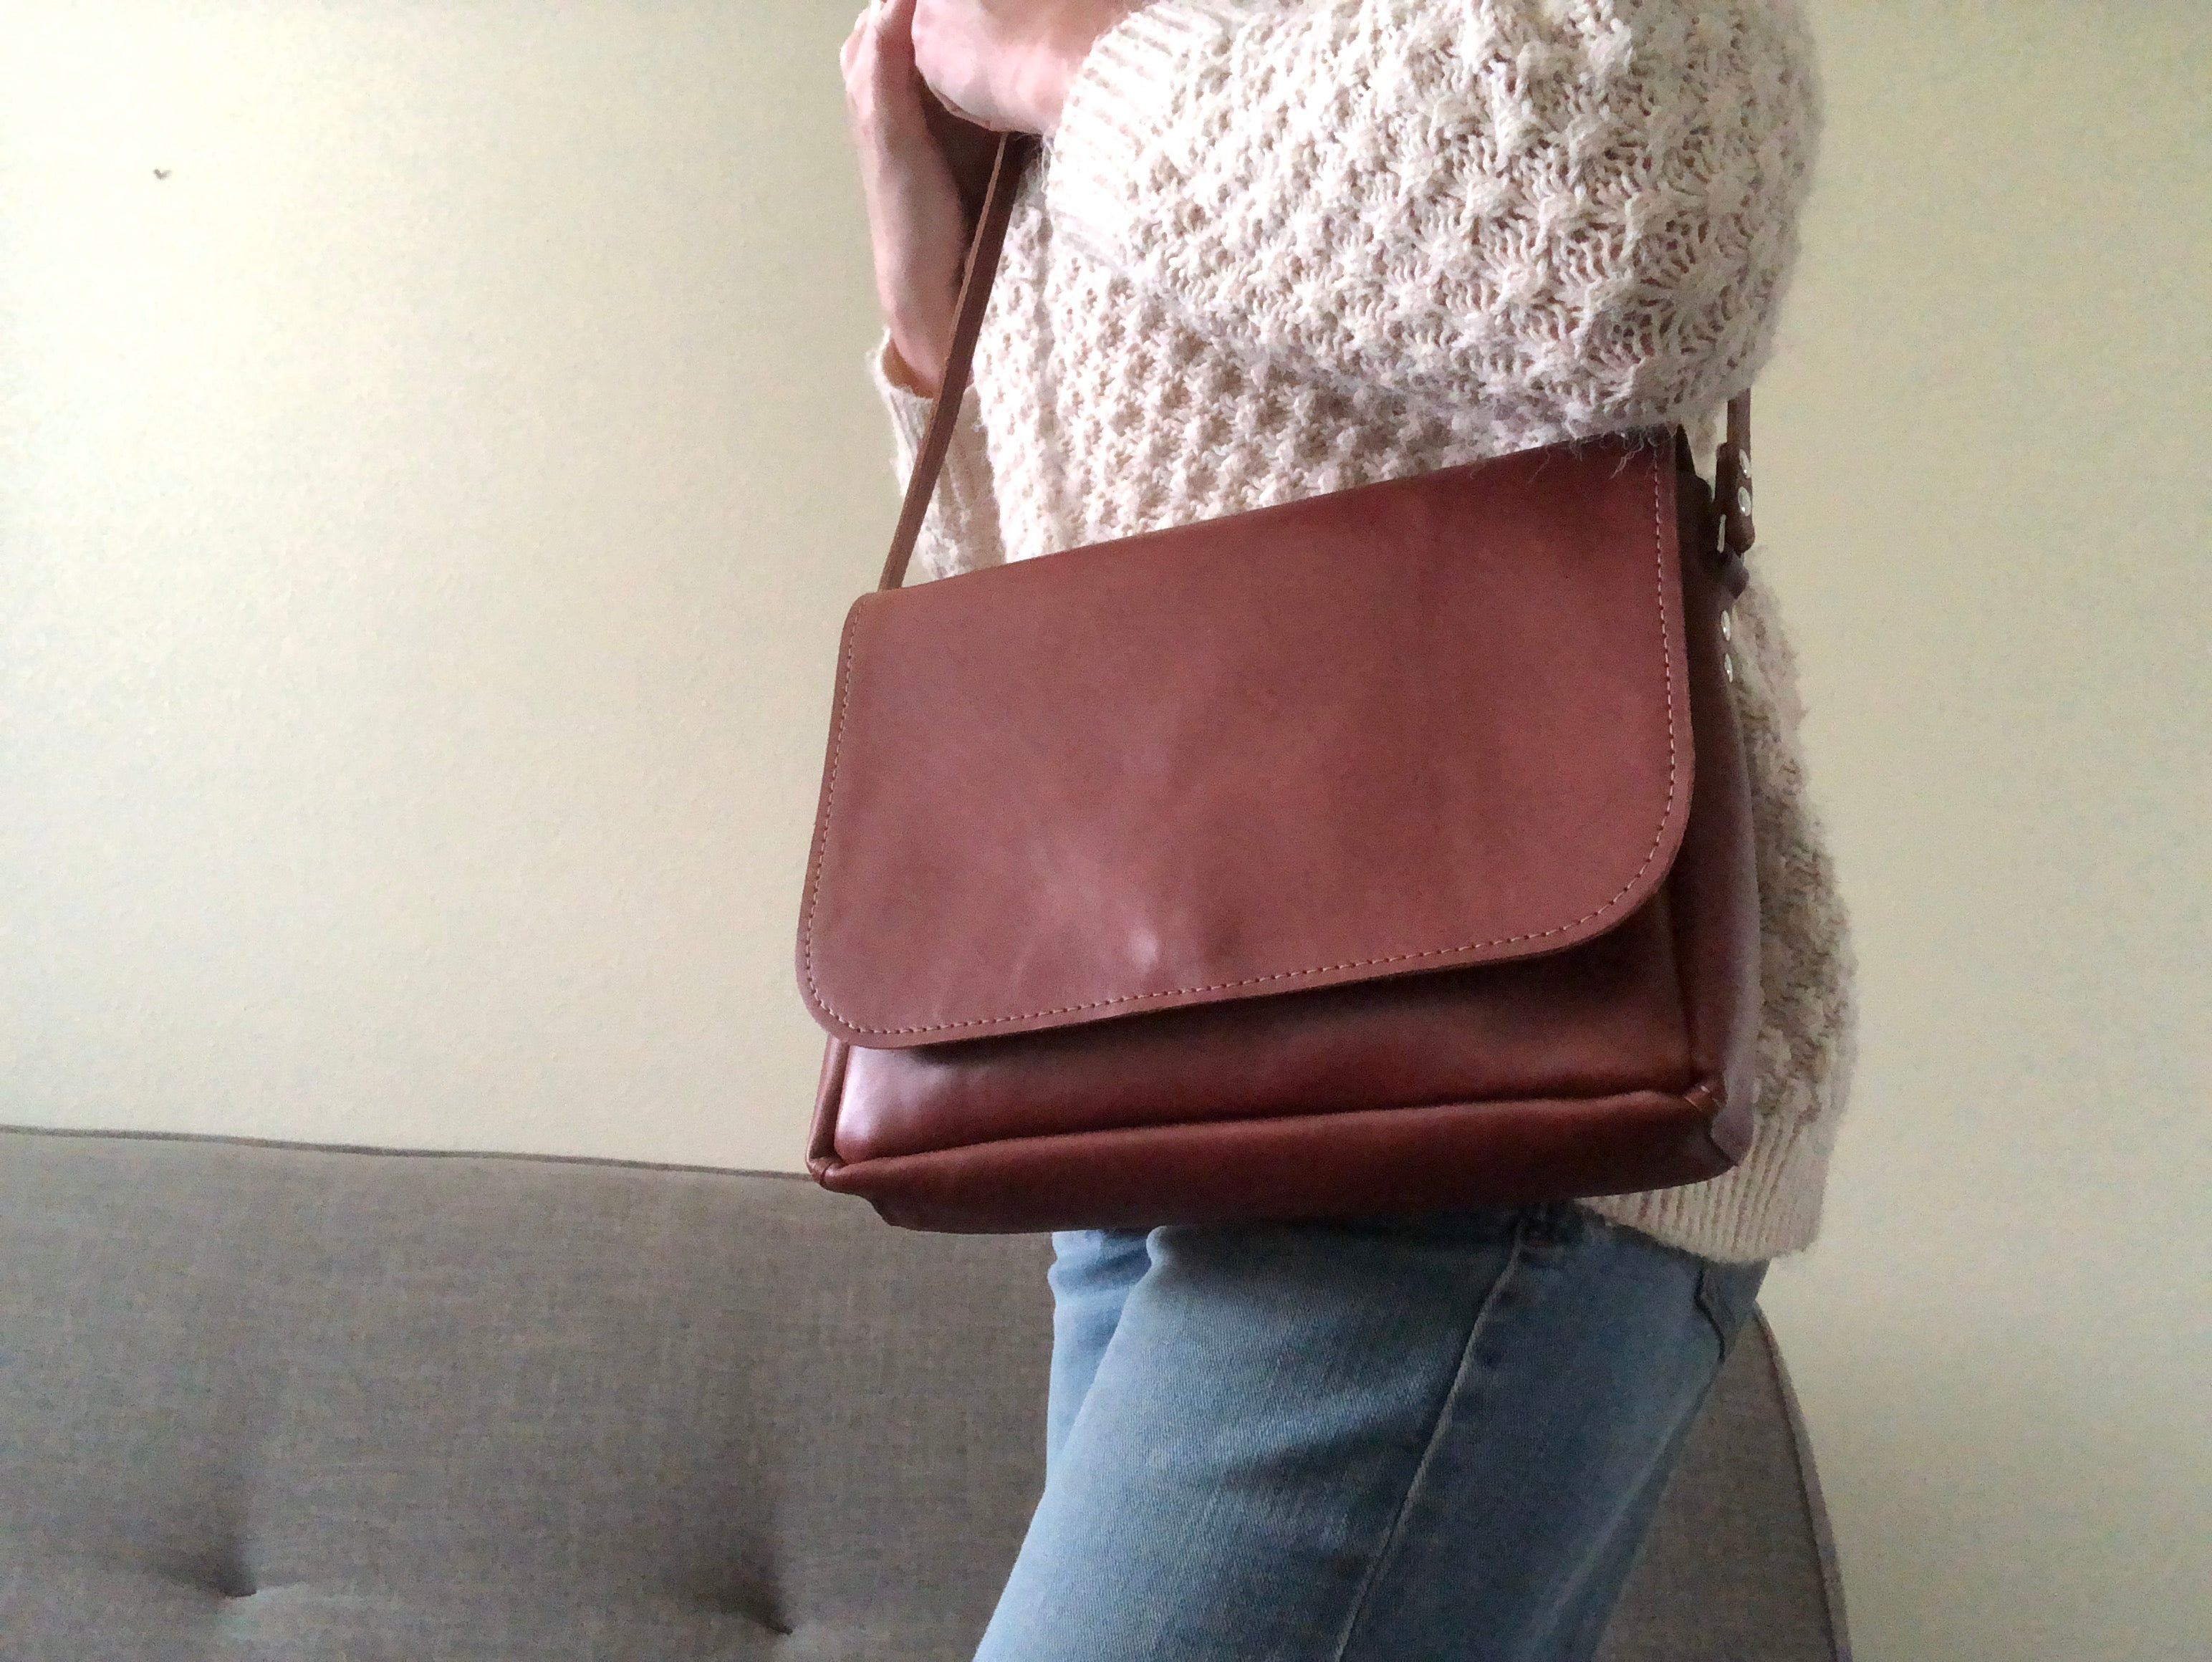 Minimal Crossbody Bag in Brown / Everyday Leather Bag / Classic Purse